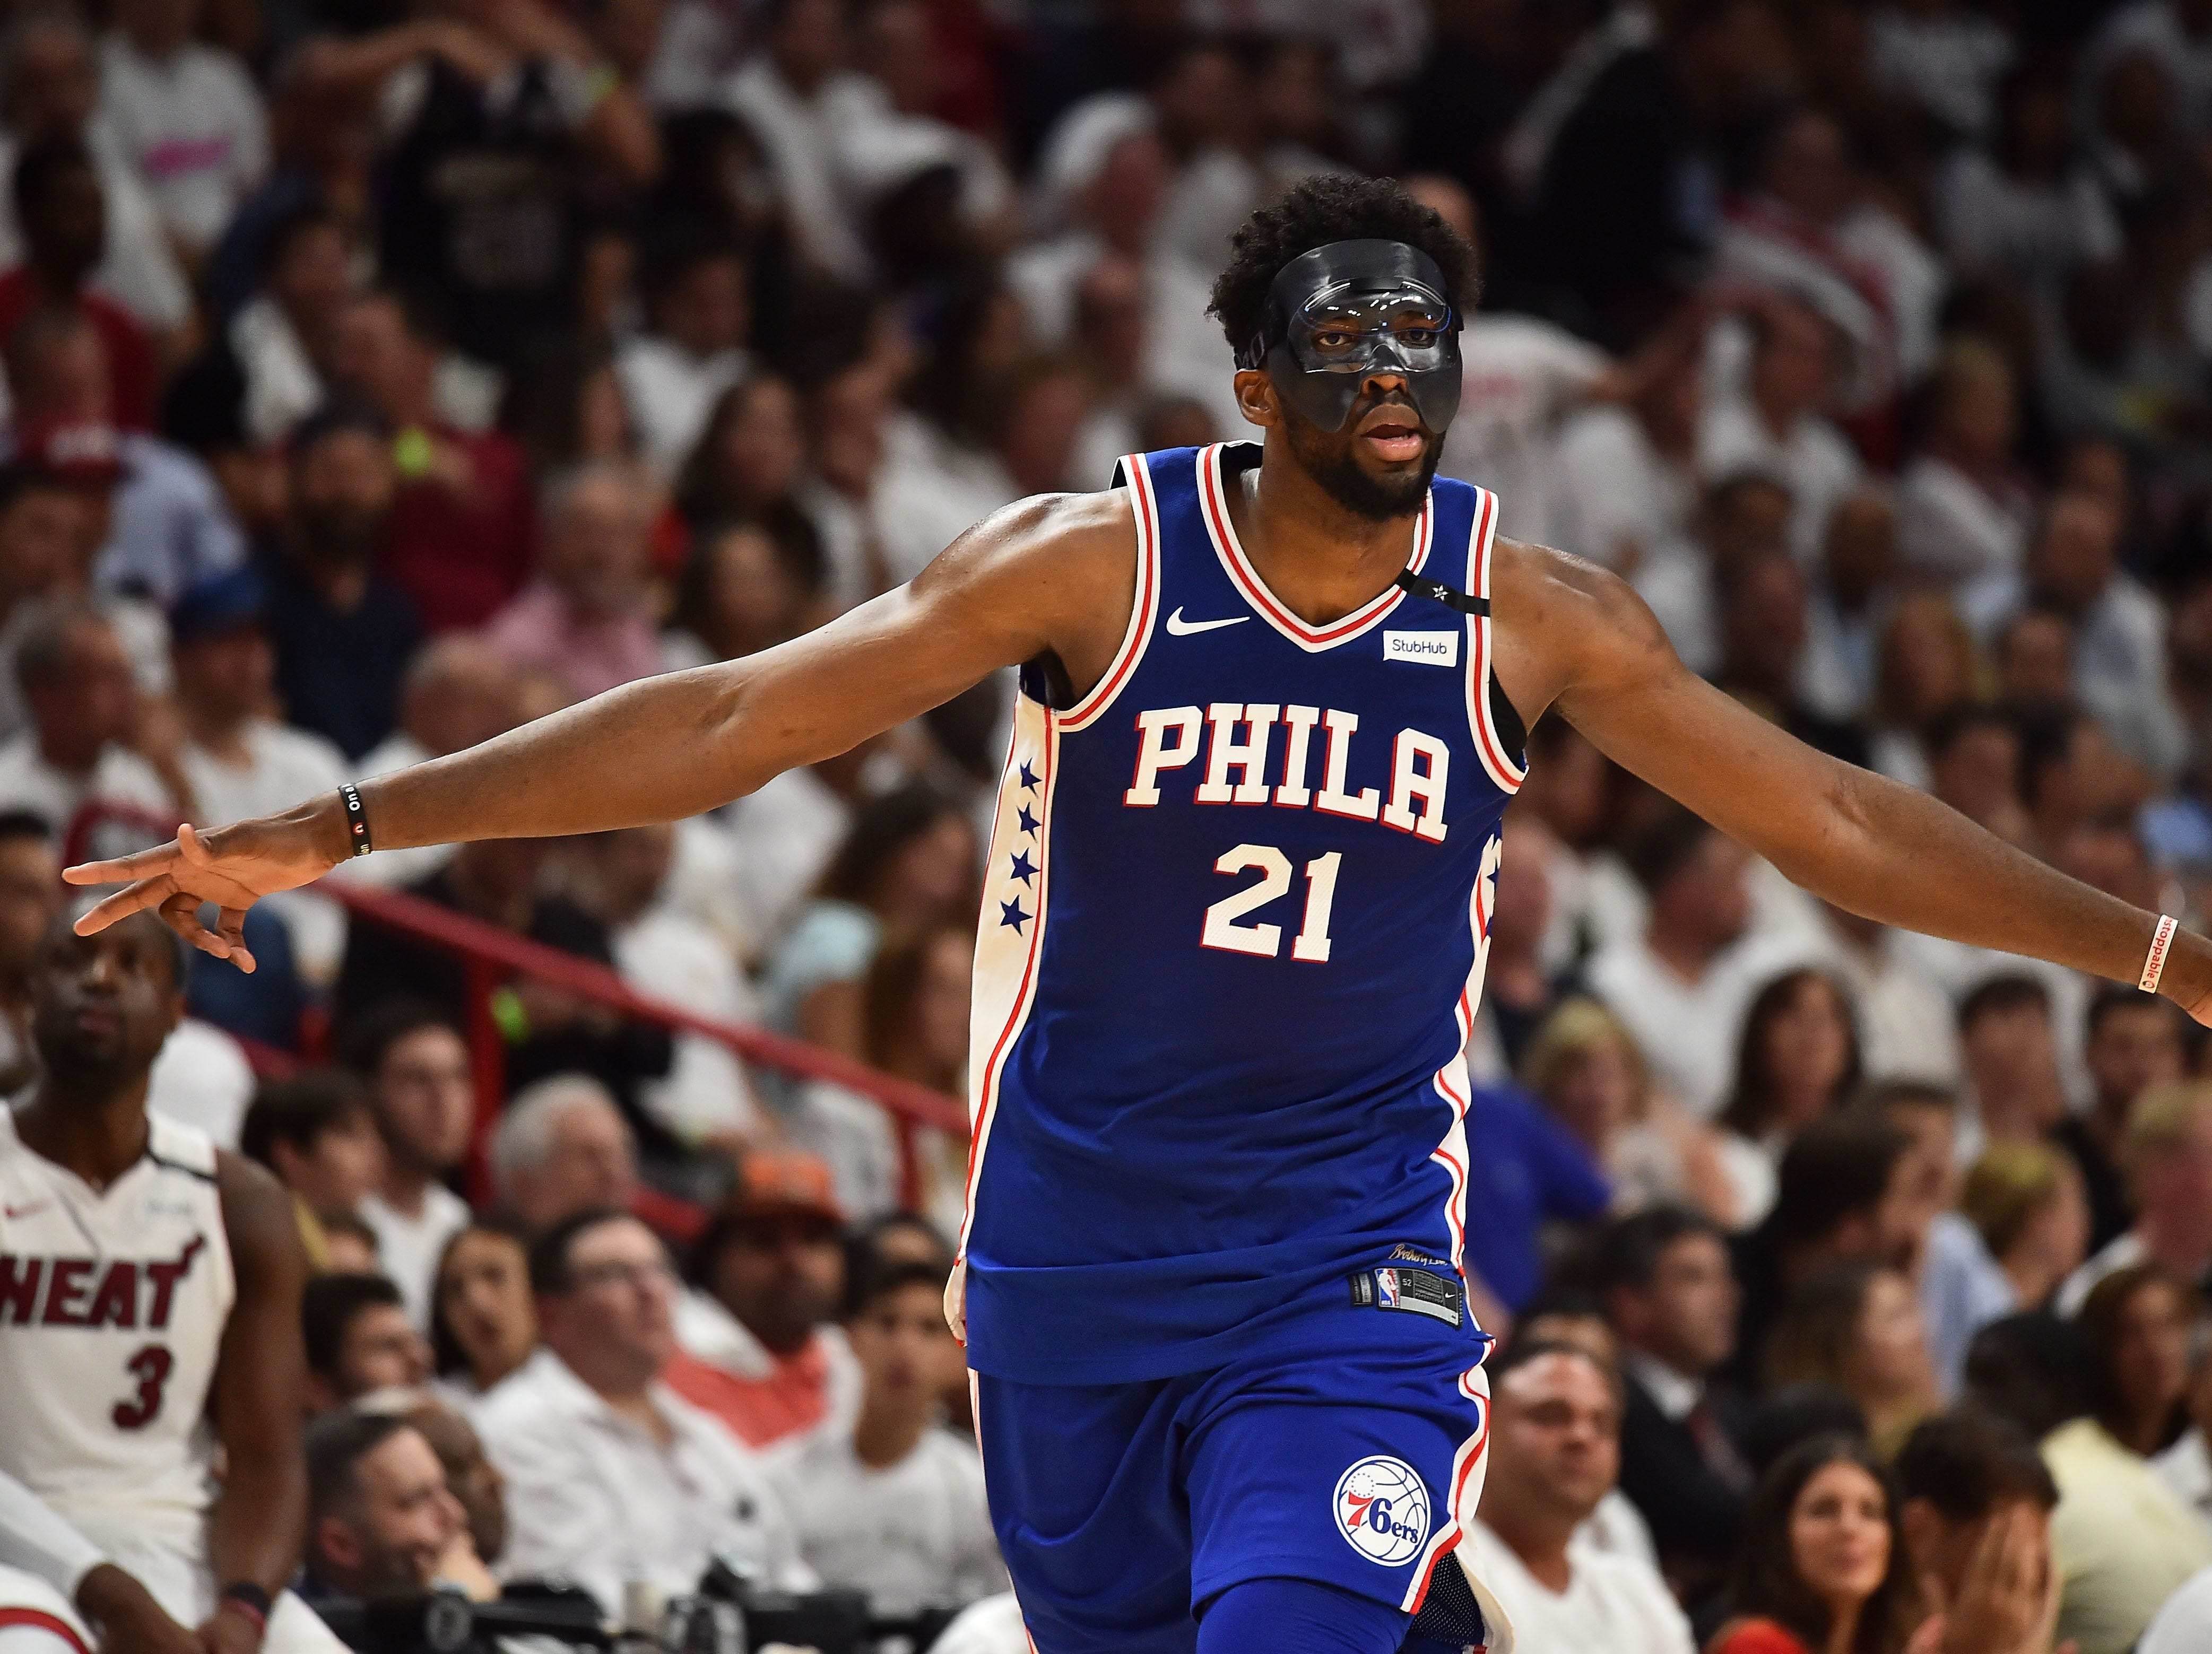 April 19: Philadelphia 76ers center Joel Embiid celebrates after making a 3-pointer during the second half of a first-round playoff game against the Miami Heat.